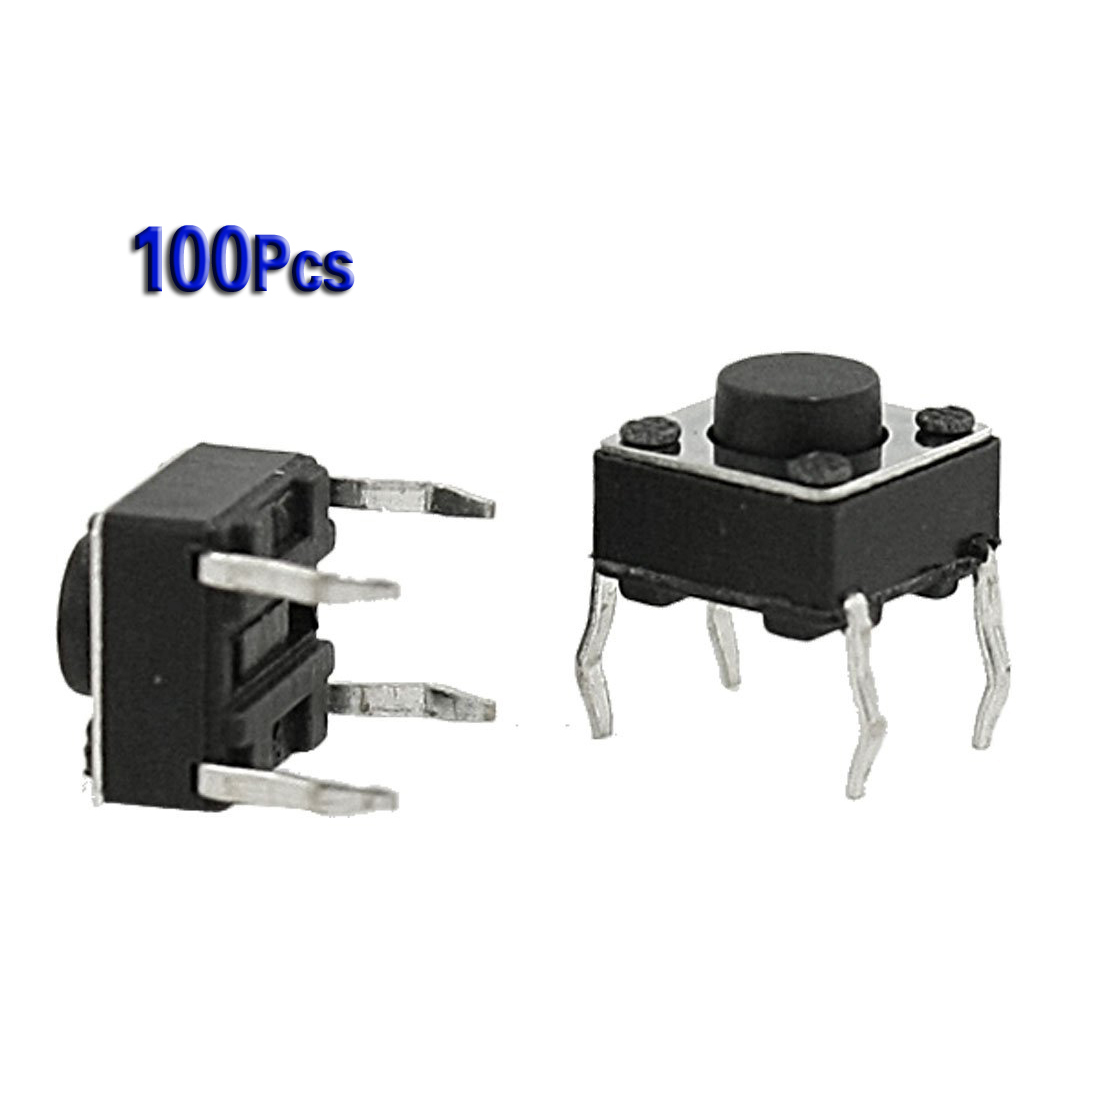 CNIM Hot Promotion!Amico 100 Pcs 6x6x4.5mm Panel PCB Momentary Tactile Tact Push Button Switch 4 Pin DIP